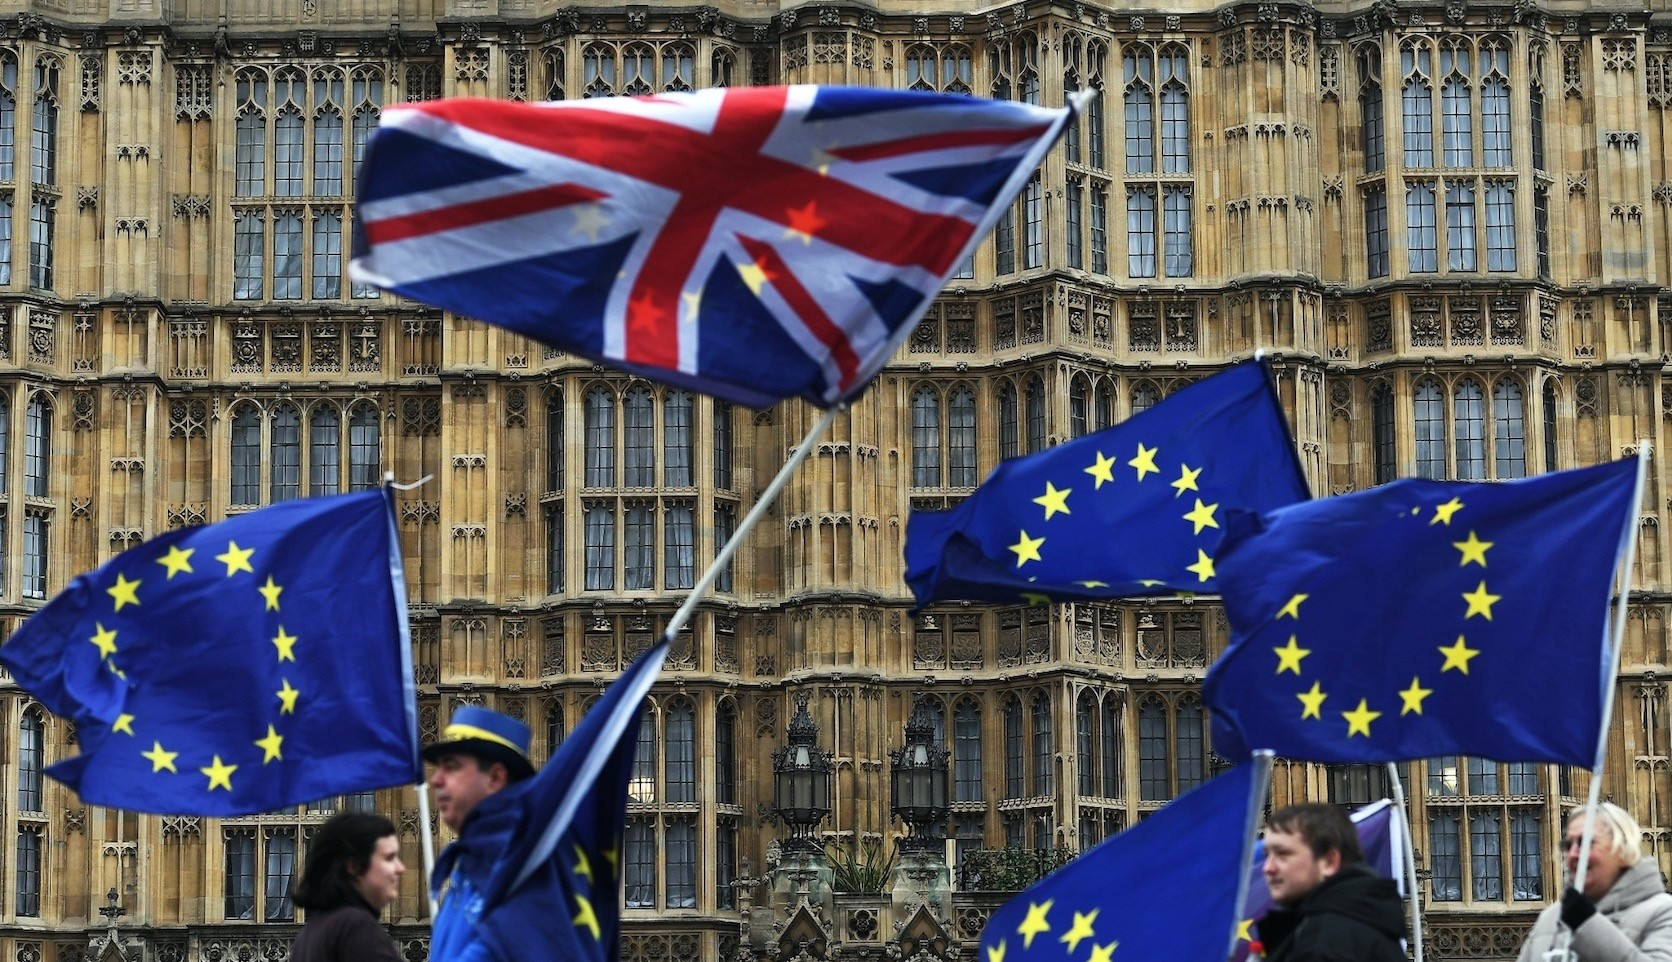 EU supporters protest against the Brexit campaign outside the Houses of Parliament in London, Jan. 29.